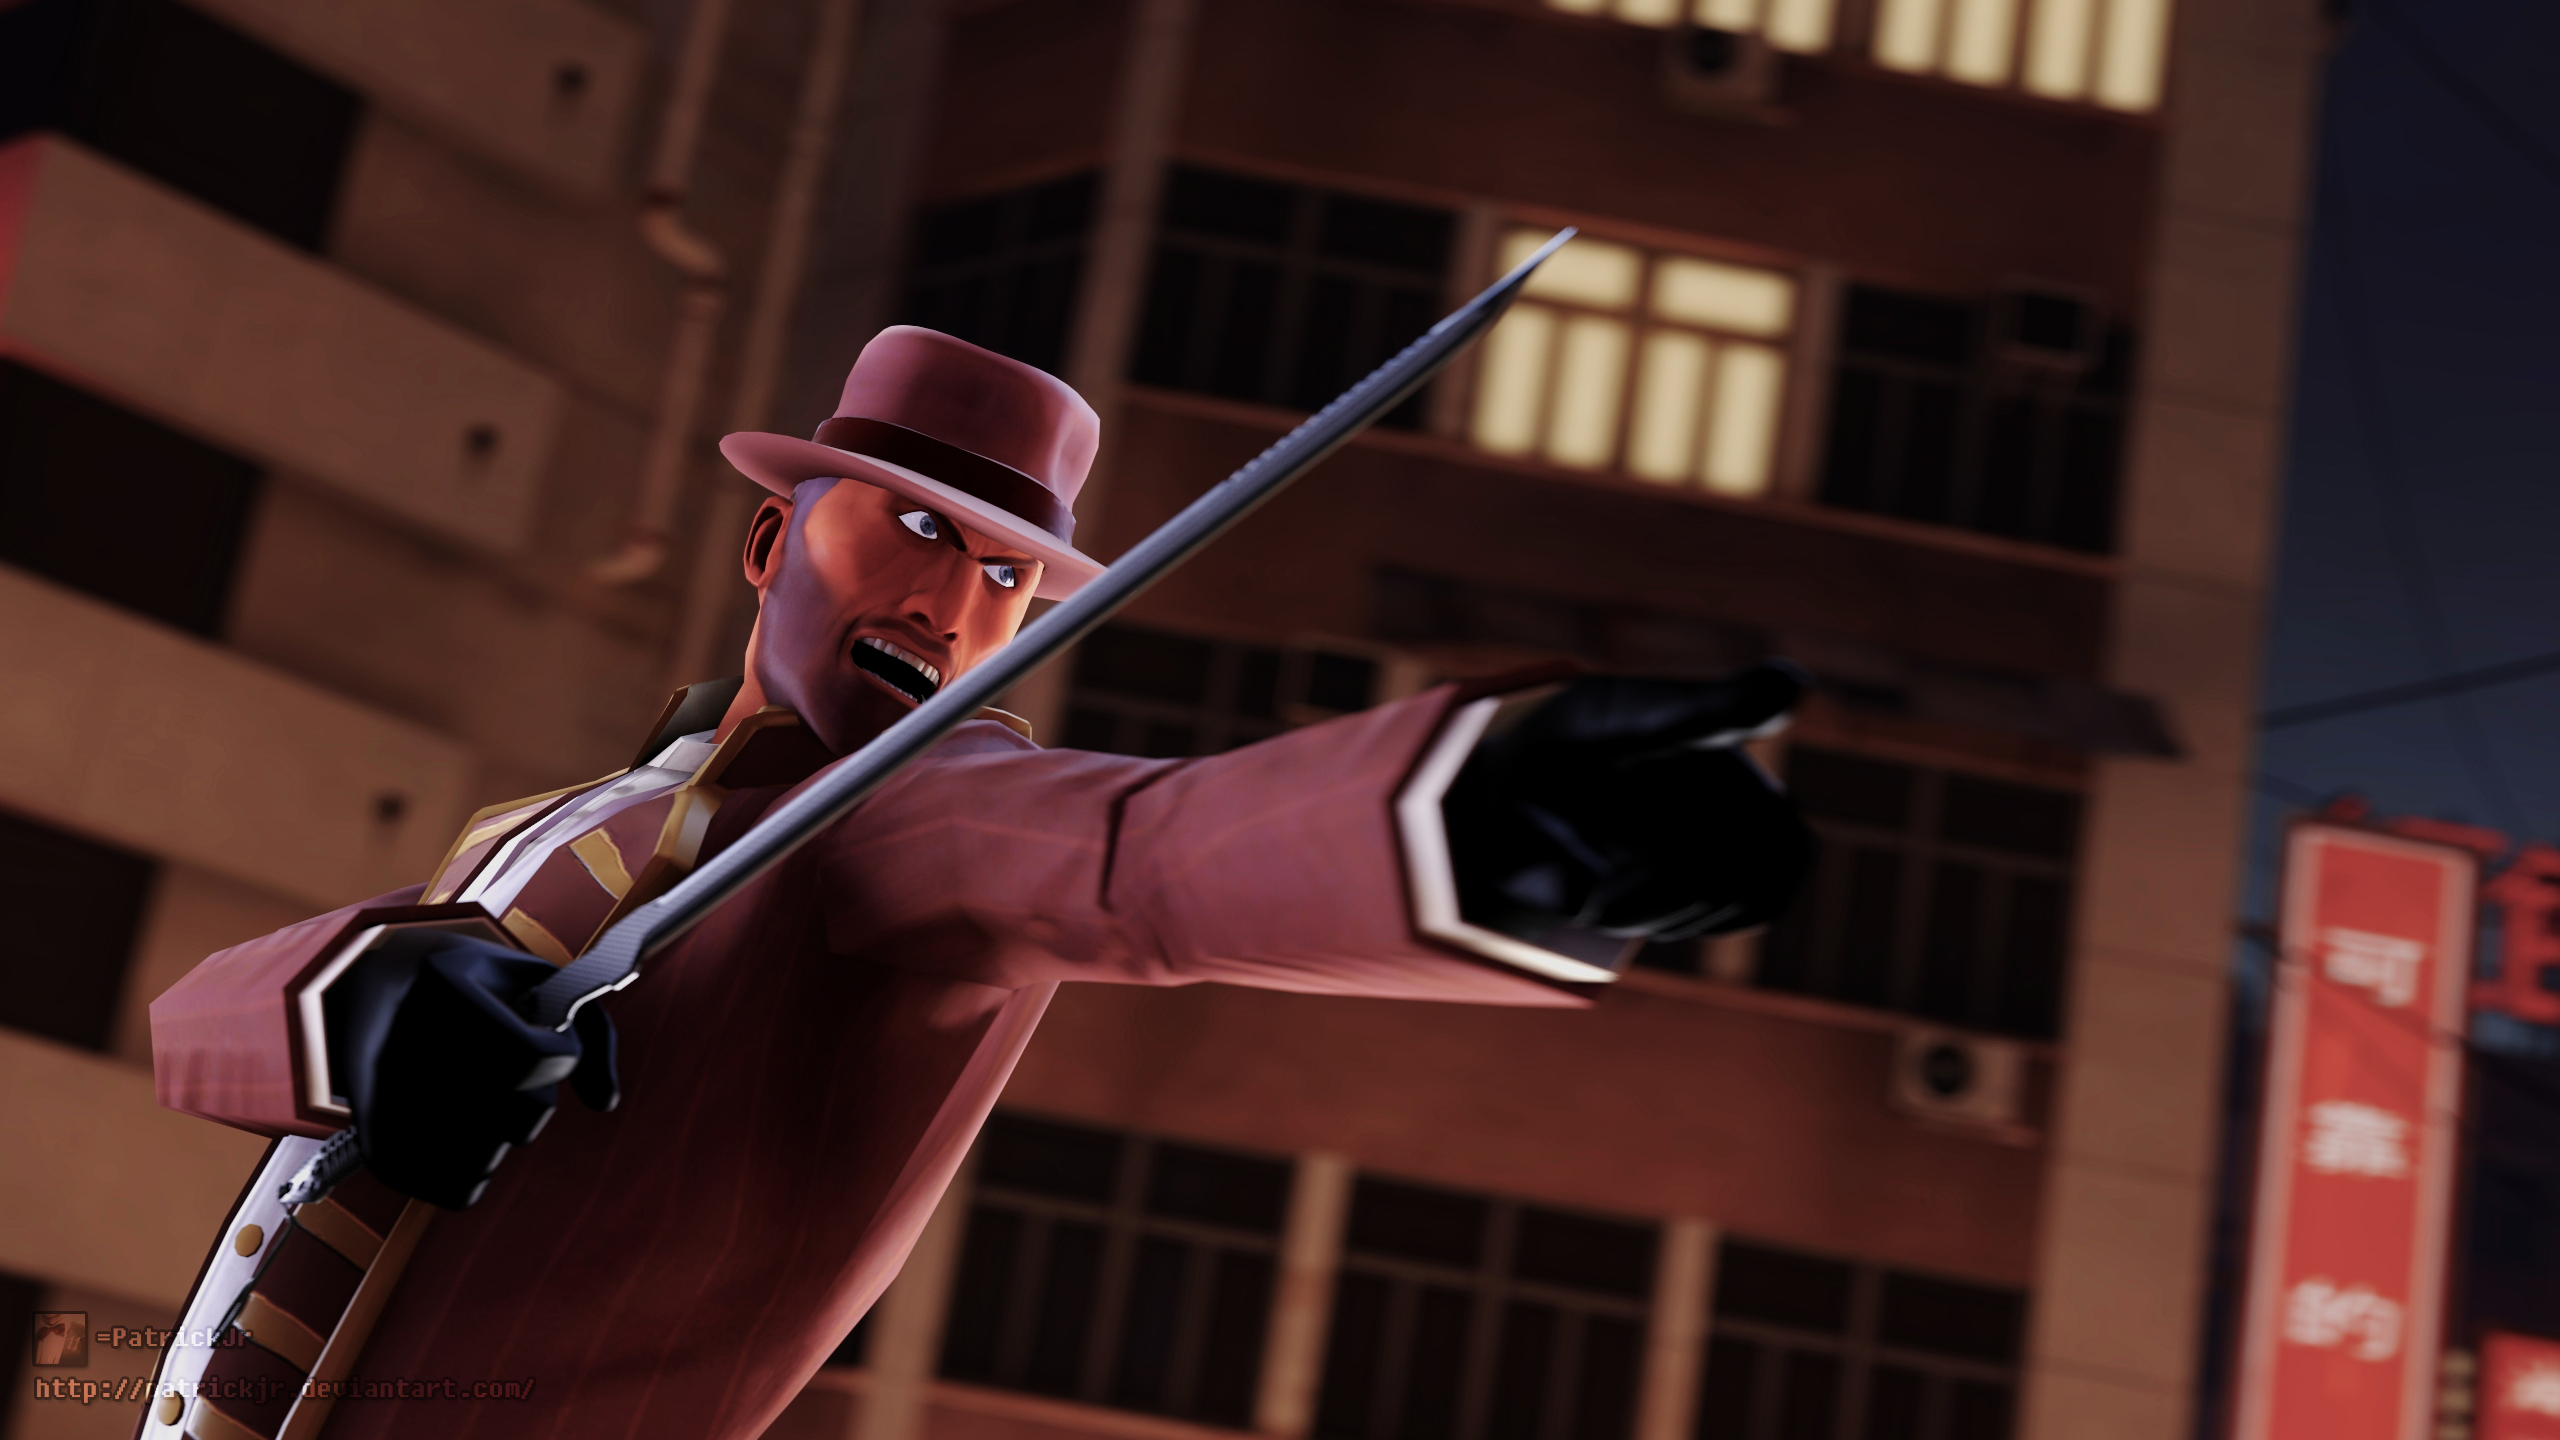 SFM Poster: The Spy's Rage by PatrickJr